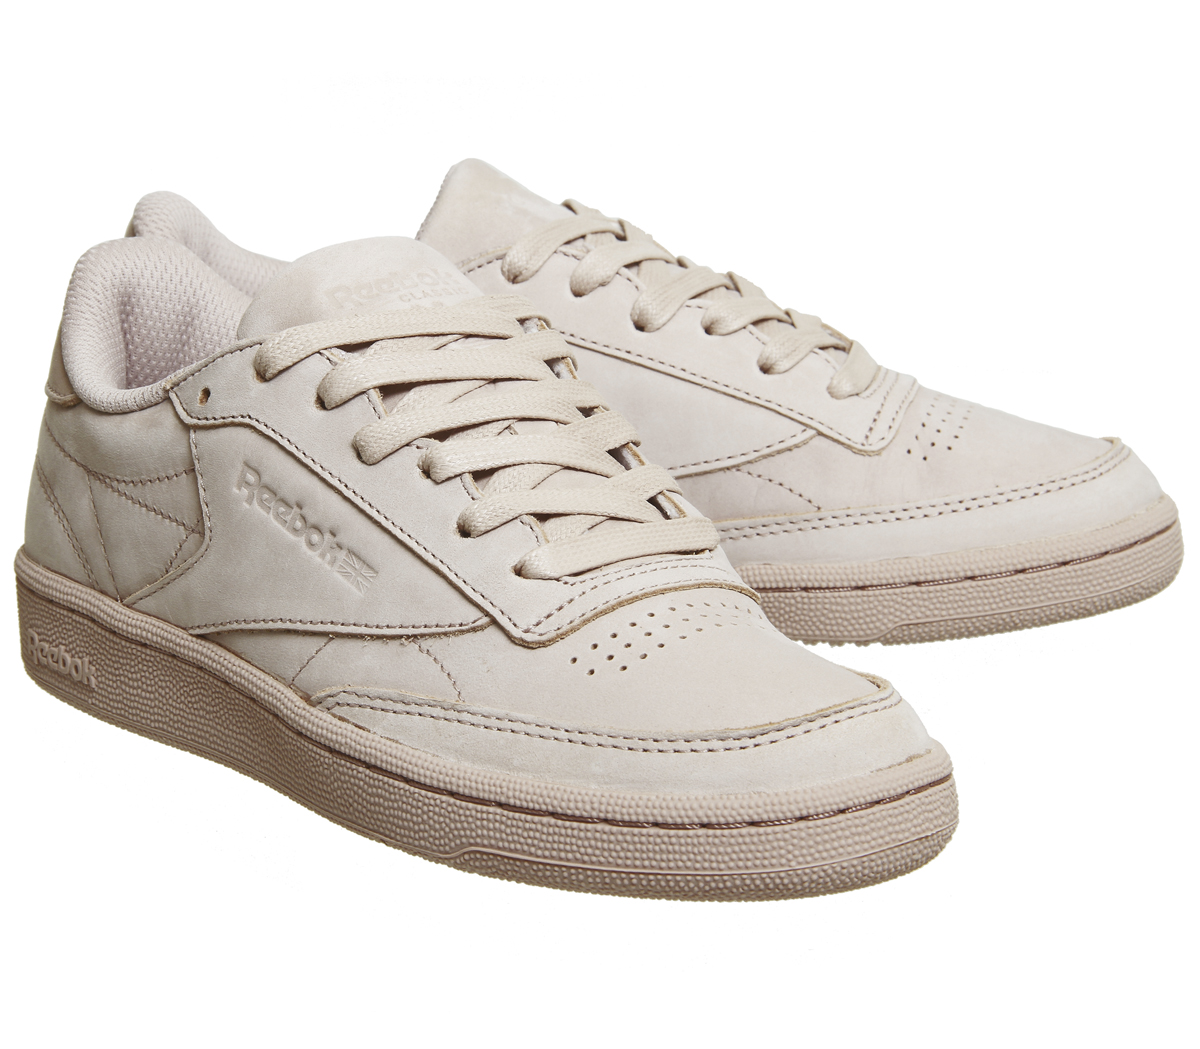 Reebok Club C 85 Shell Pink Gold Trainers Shoes  504ca8483